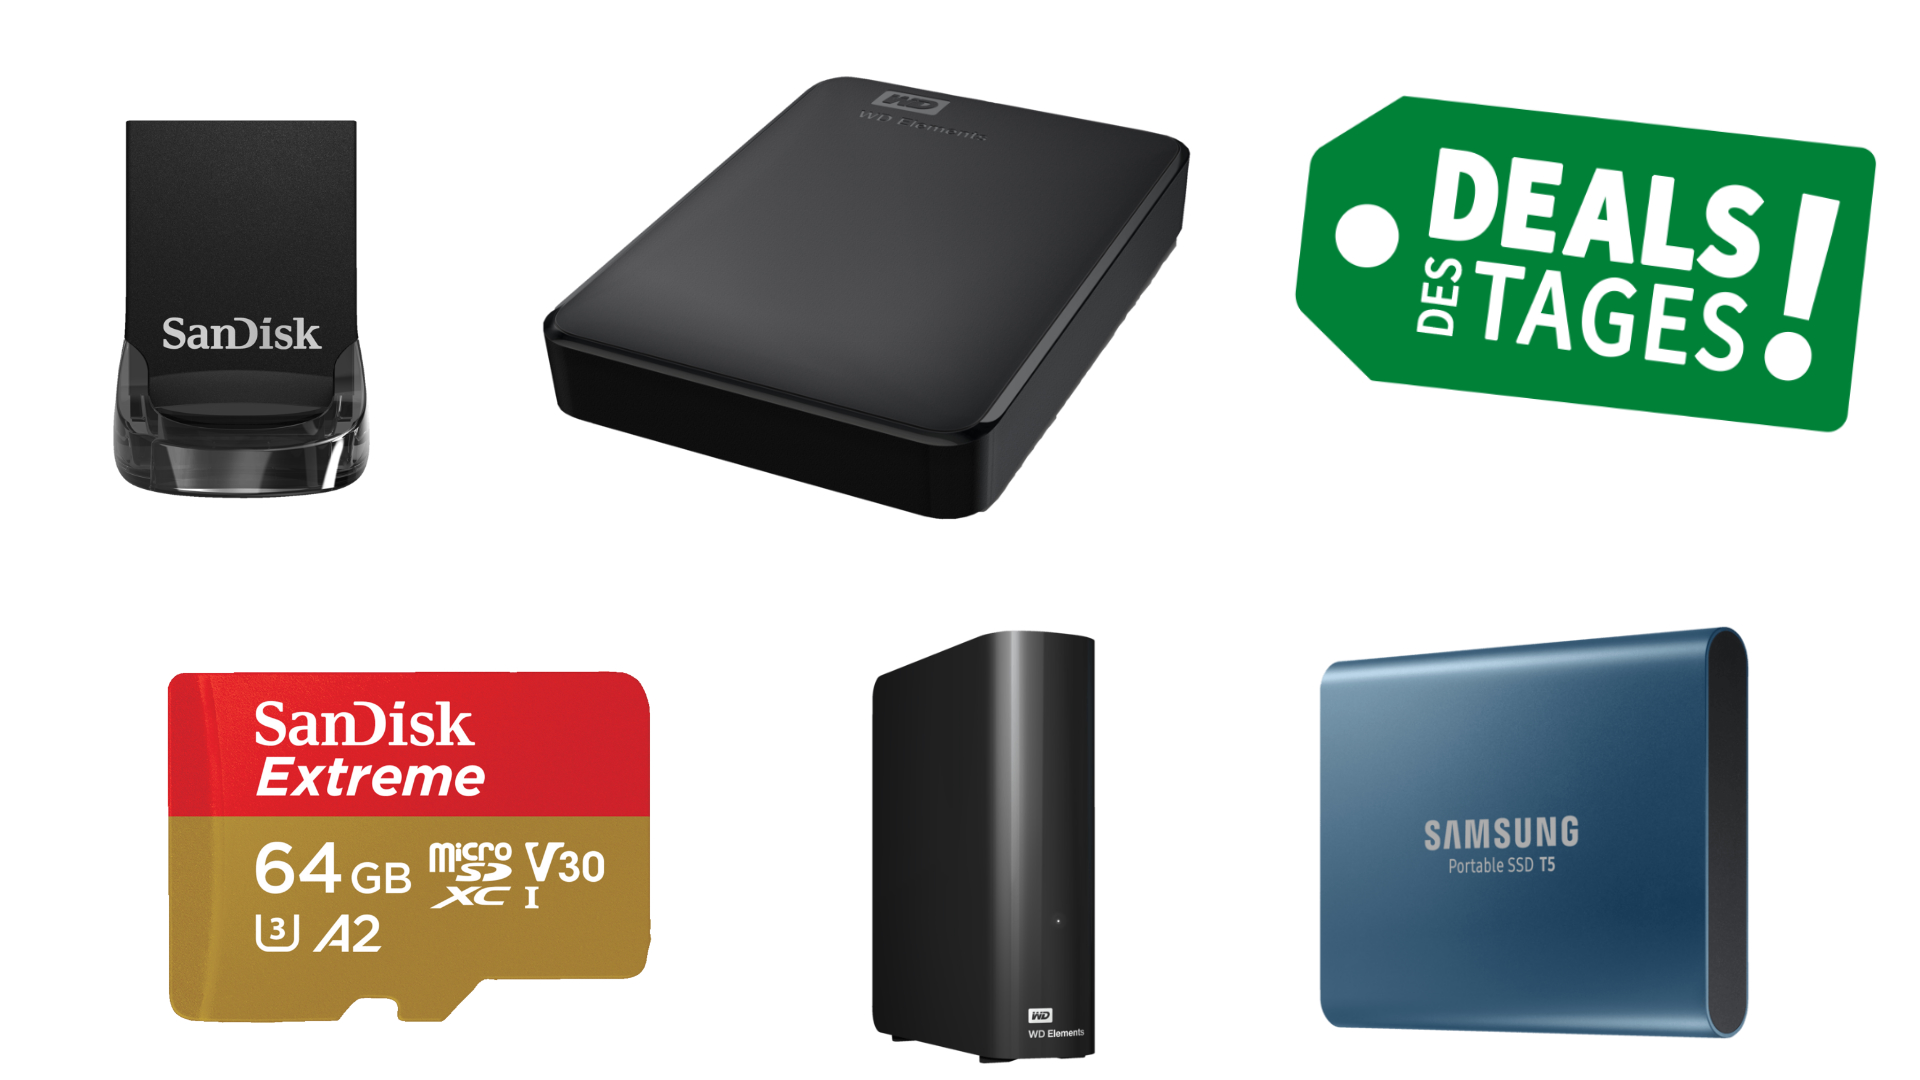 External Hard Drives Memory Card Ssds More In The Offer Check Deal Of The Day Games 4 Geeks